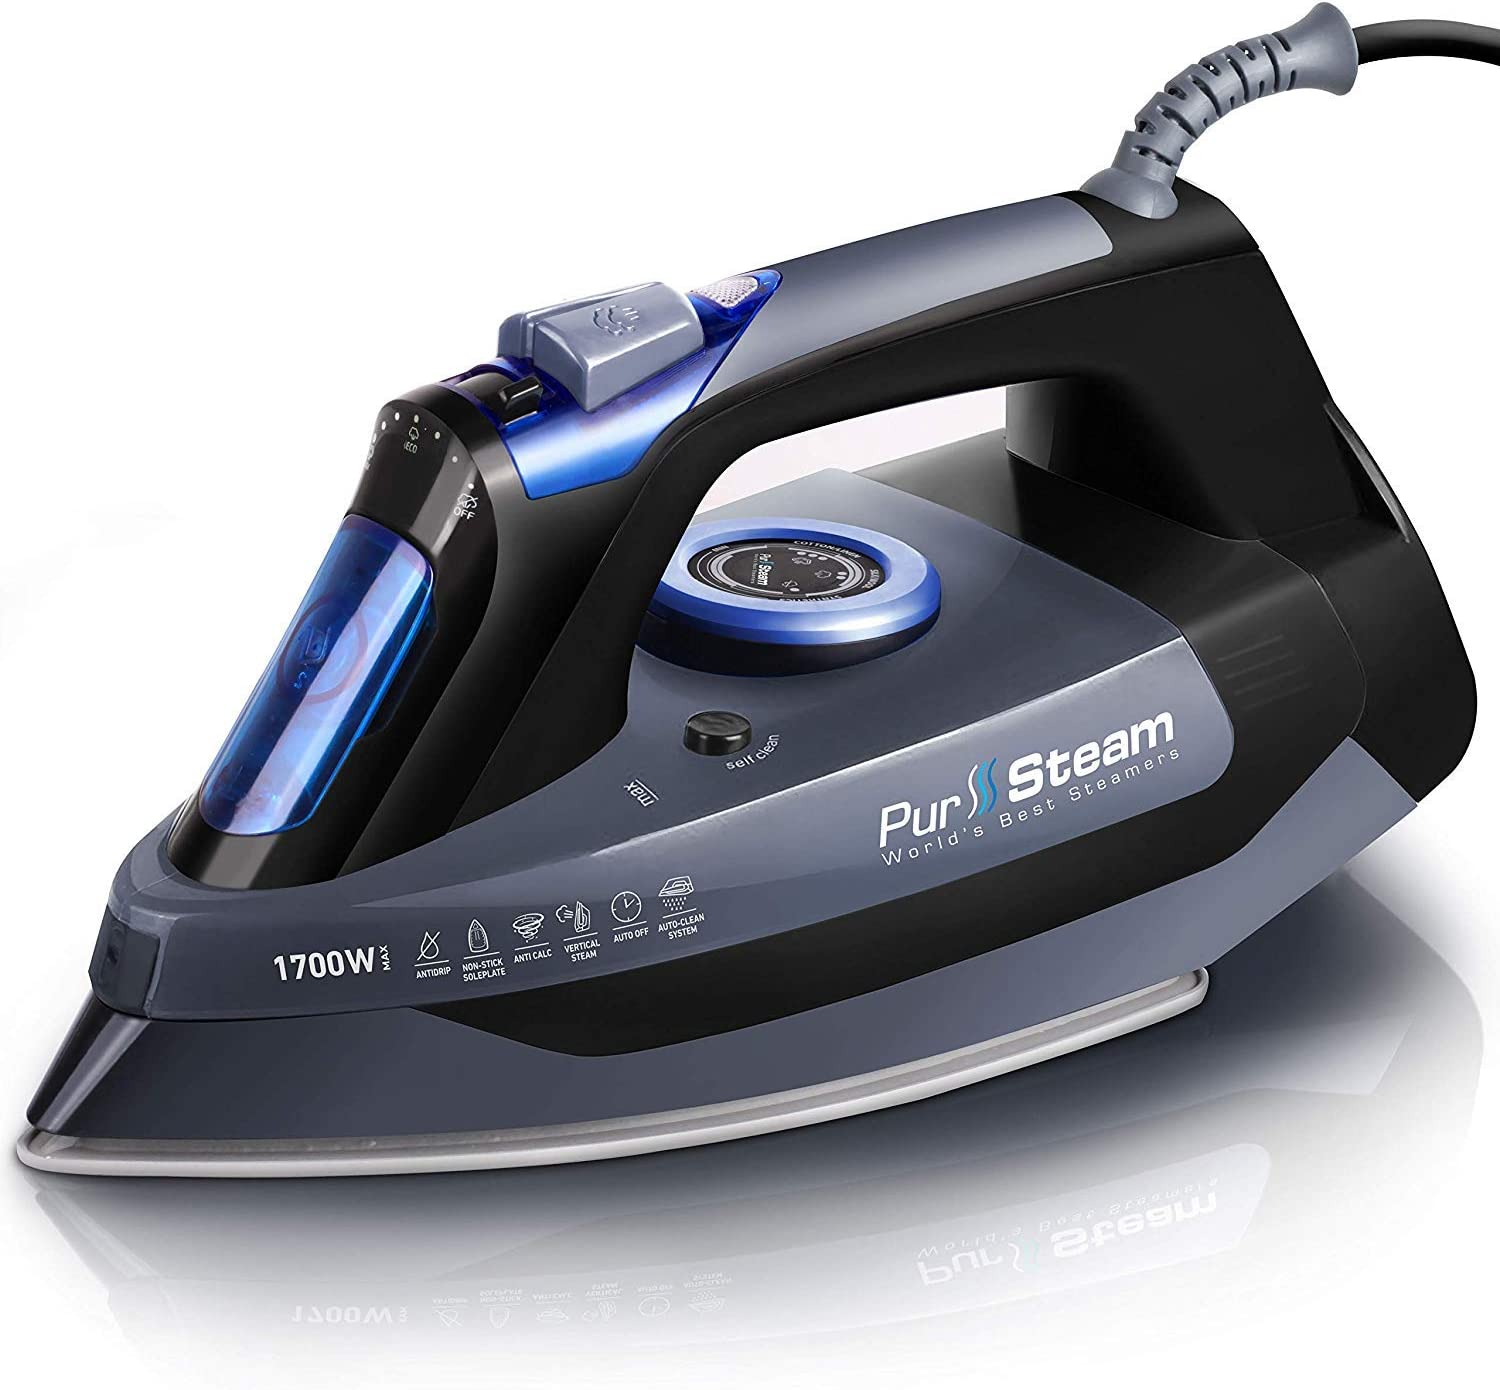 Professional Grade 1700W Steam Iron for Clothes with Rapid Even-Heat Scratch Resistant Stainless Steel Sole Plate, True Position Axial Aligned Steam Holes, Self-Cleaning Function Image